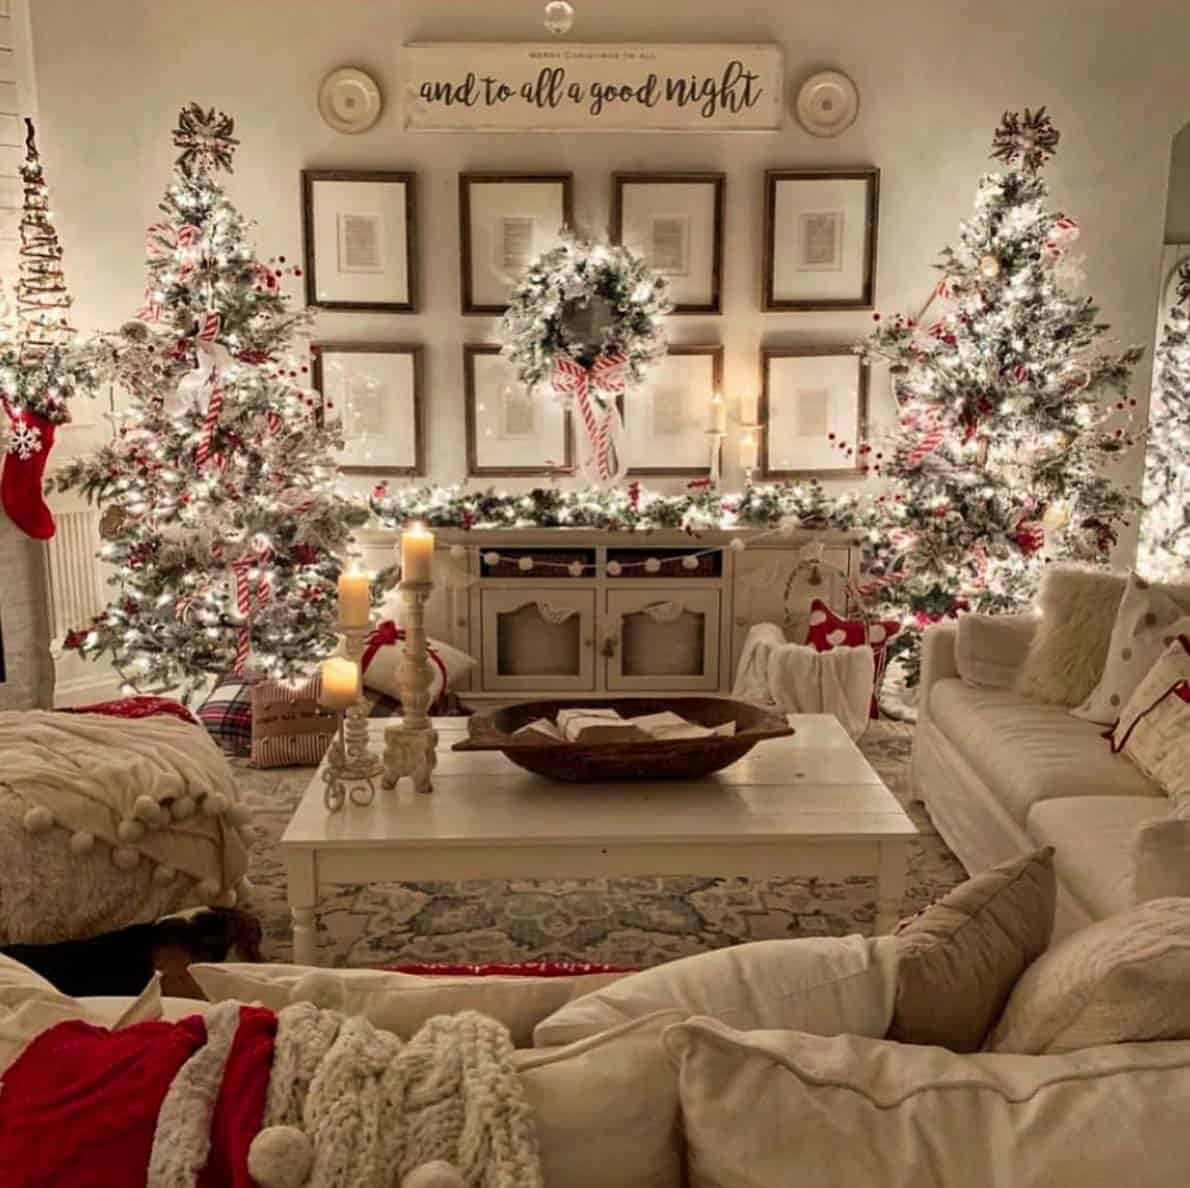 Holiday Home Design Ideas: 40+ Cozy And Wonderful Rustic Farmhouse Christmas